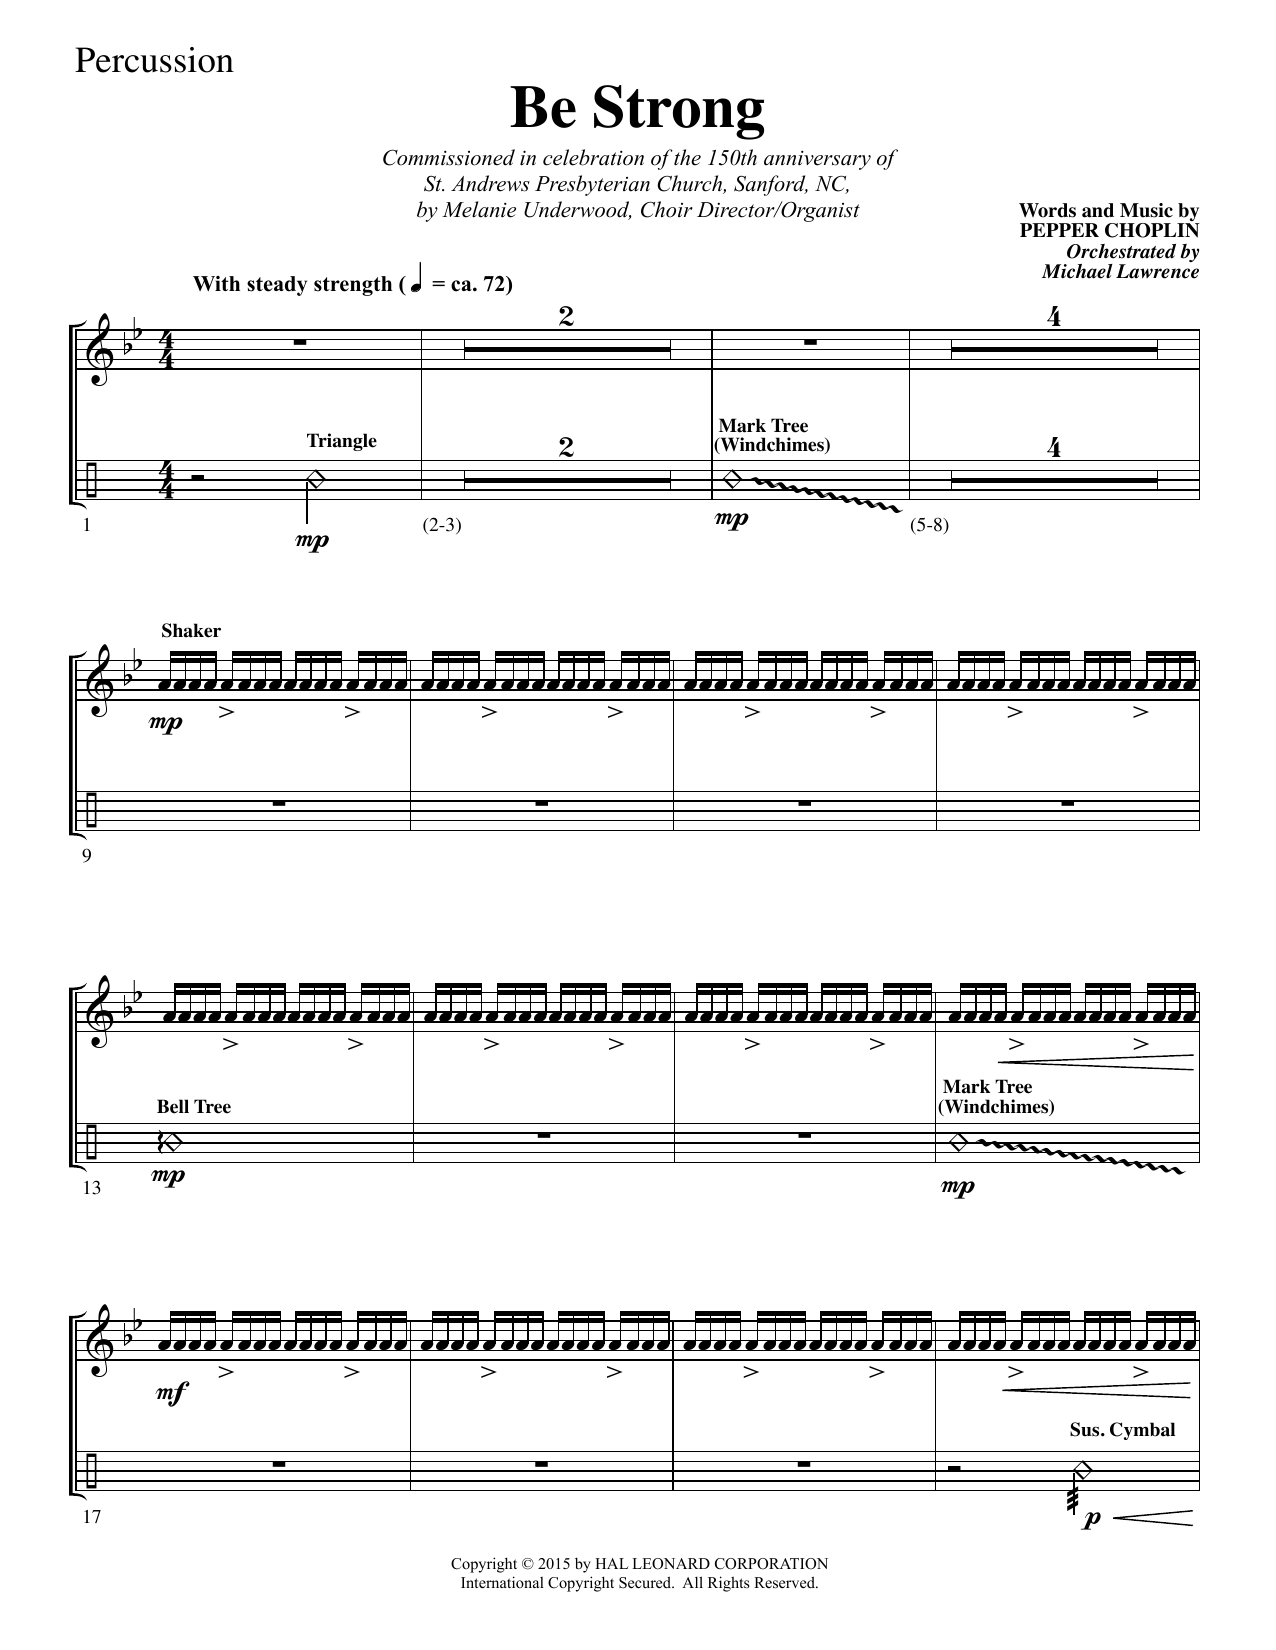 Be Strong - Percussion sheet music